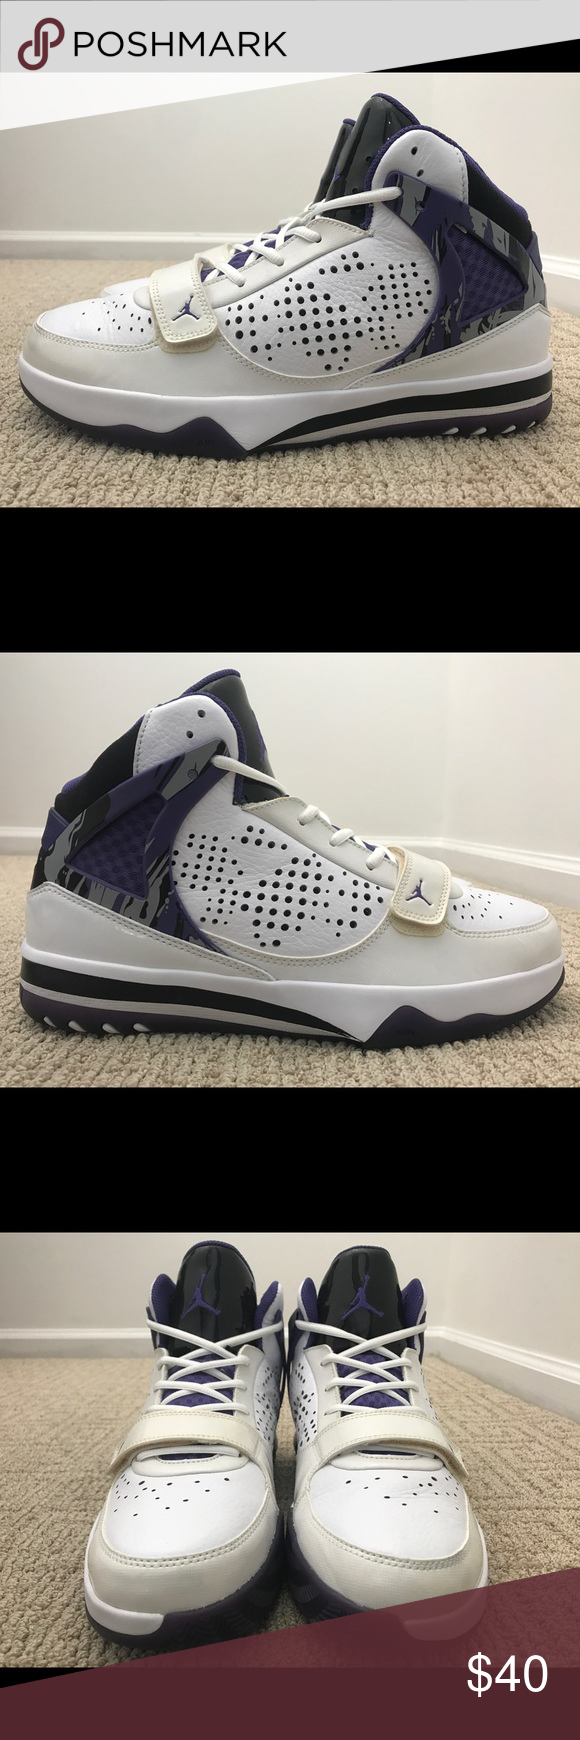 finest selection ddd9c d09b3 Nike air Jordan Phase 23 hoops sz 12 Shoes are used in real good condition,  users look great with normal signs of wear, bottoms don t have any wear.